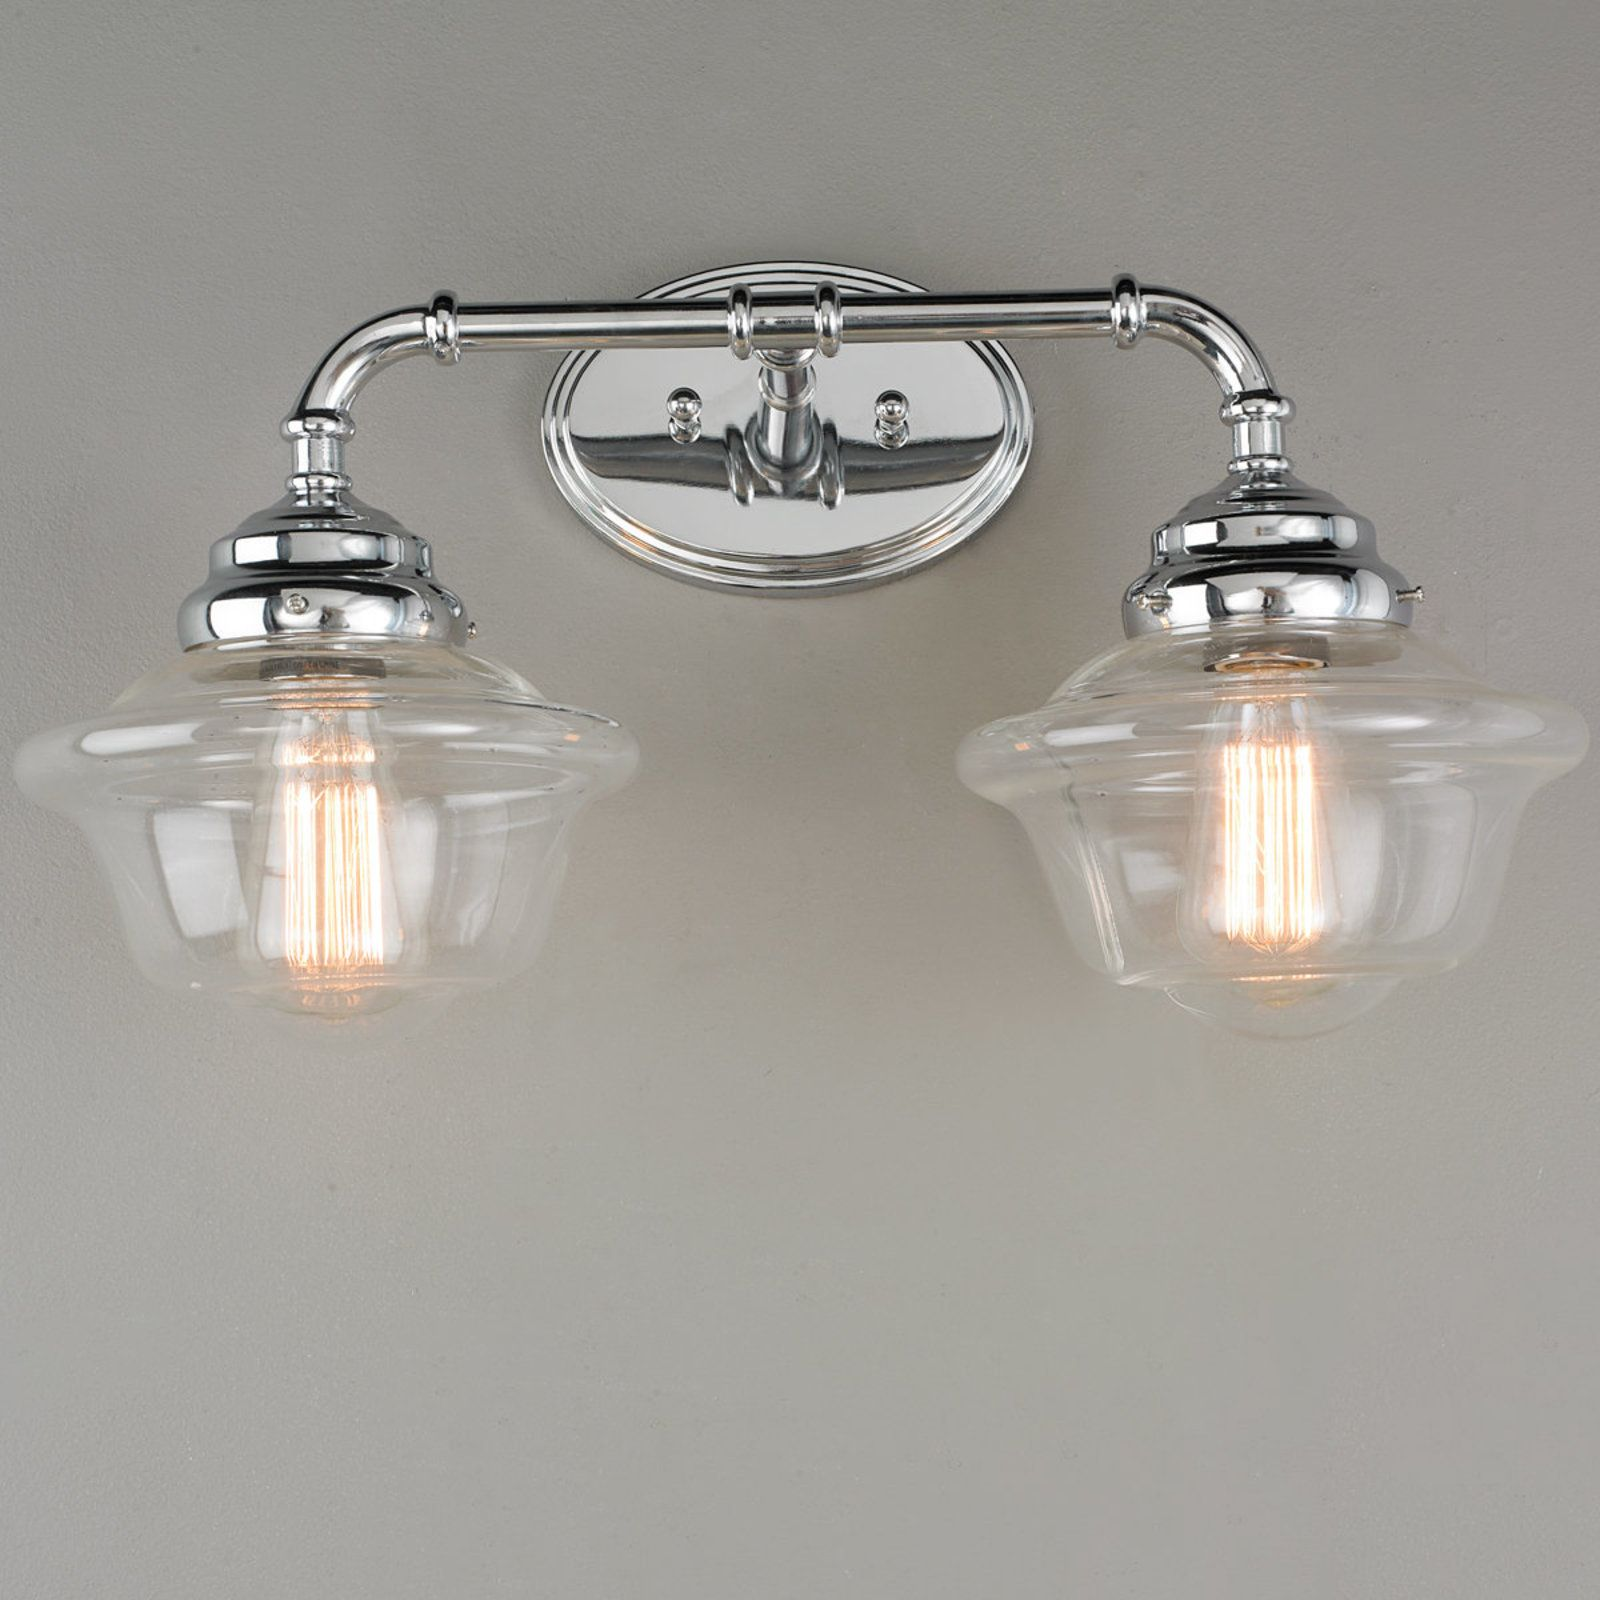 bathrooms for fixtures light wells as images ideas remarkable chandeliers shower adorable design lighting vanity bath traditional lights bathroom copper chrome